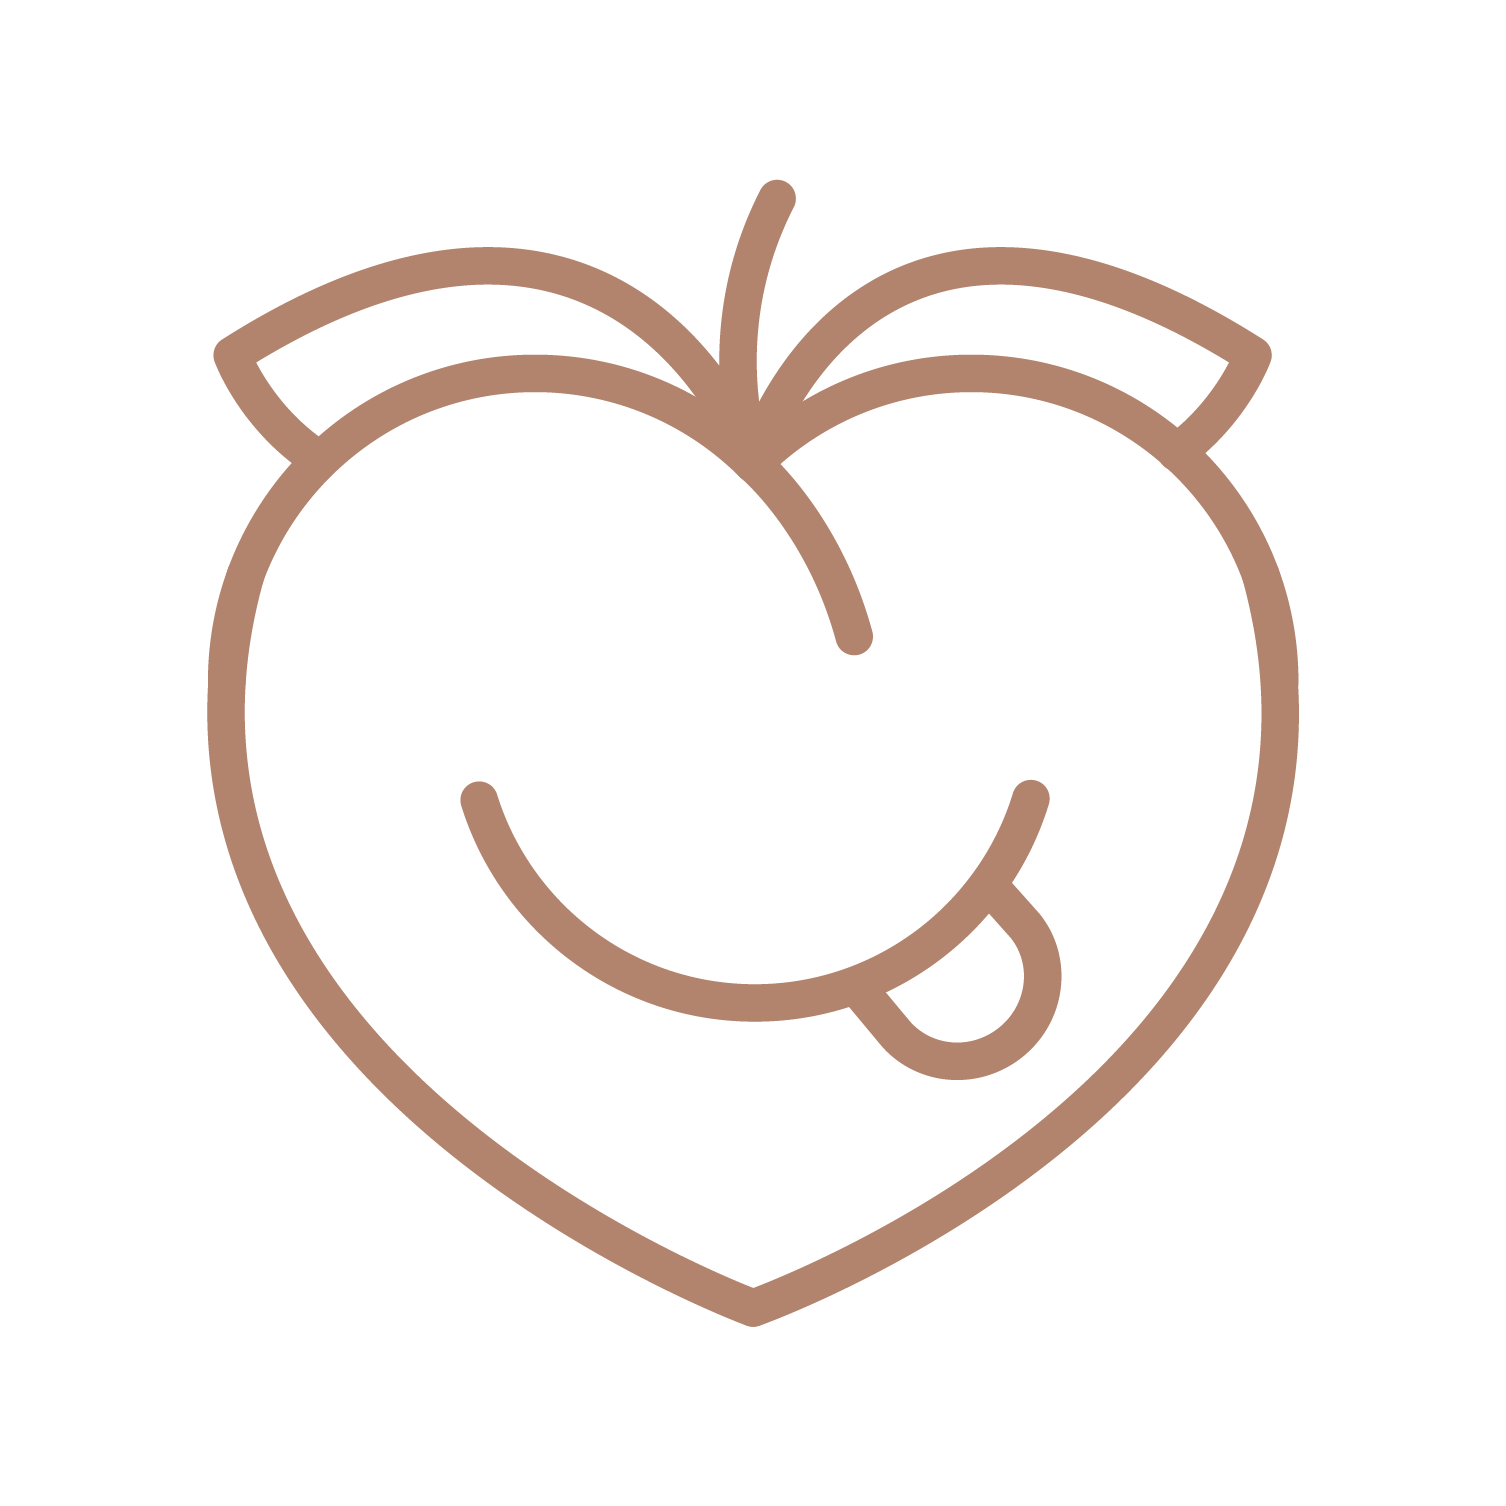 A smiling peach drawing representing spiced up relationship because of the Getting Down Kit by MyMuse